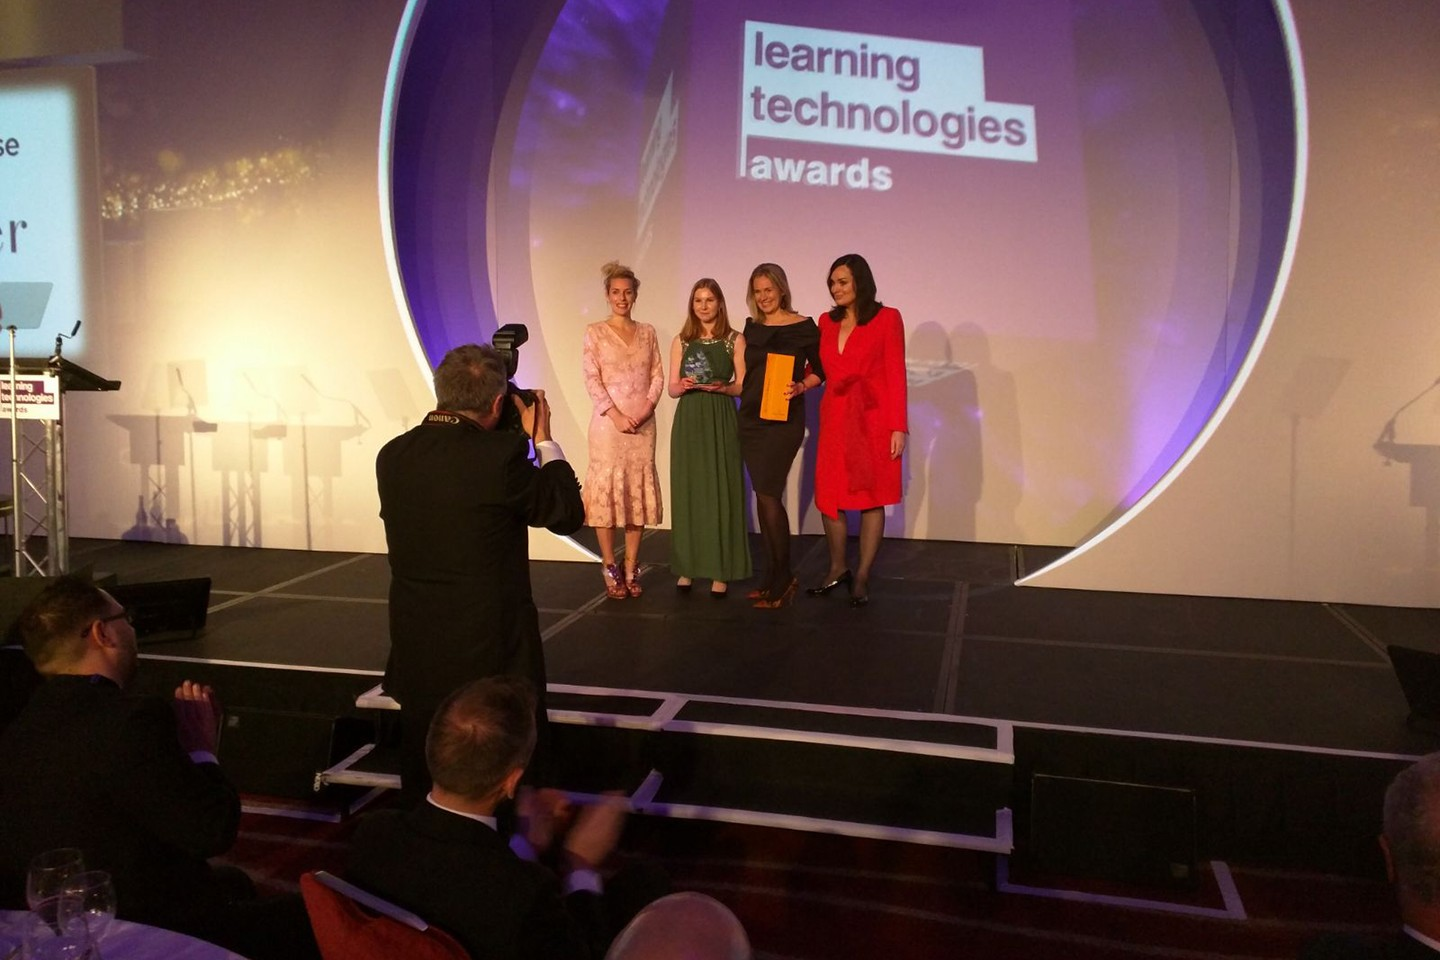 The Hunkemöller & TinQwise team receives the award for 'Best use of mobile learning' on stage